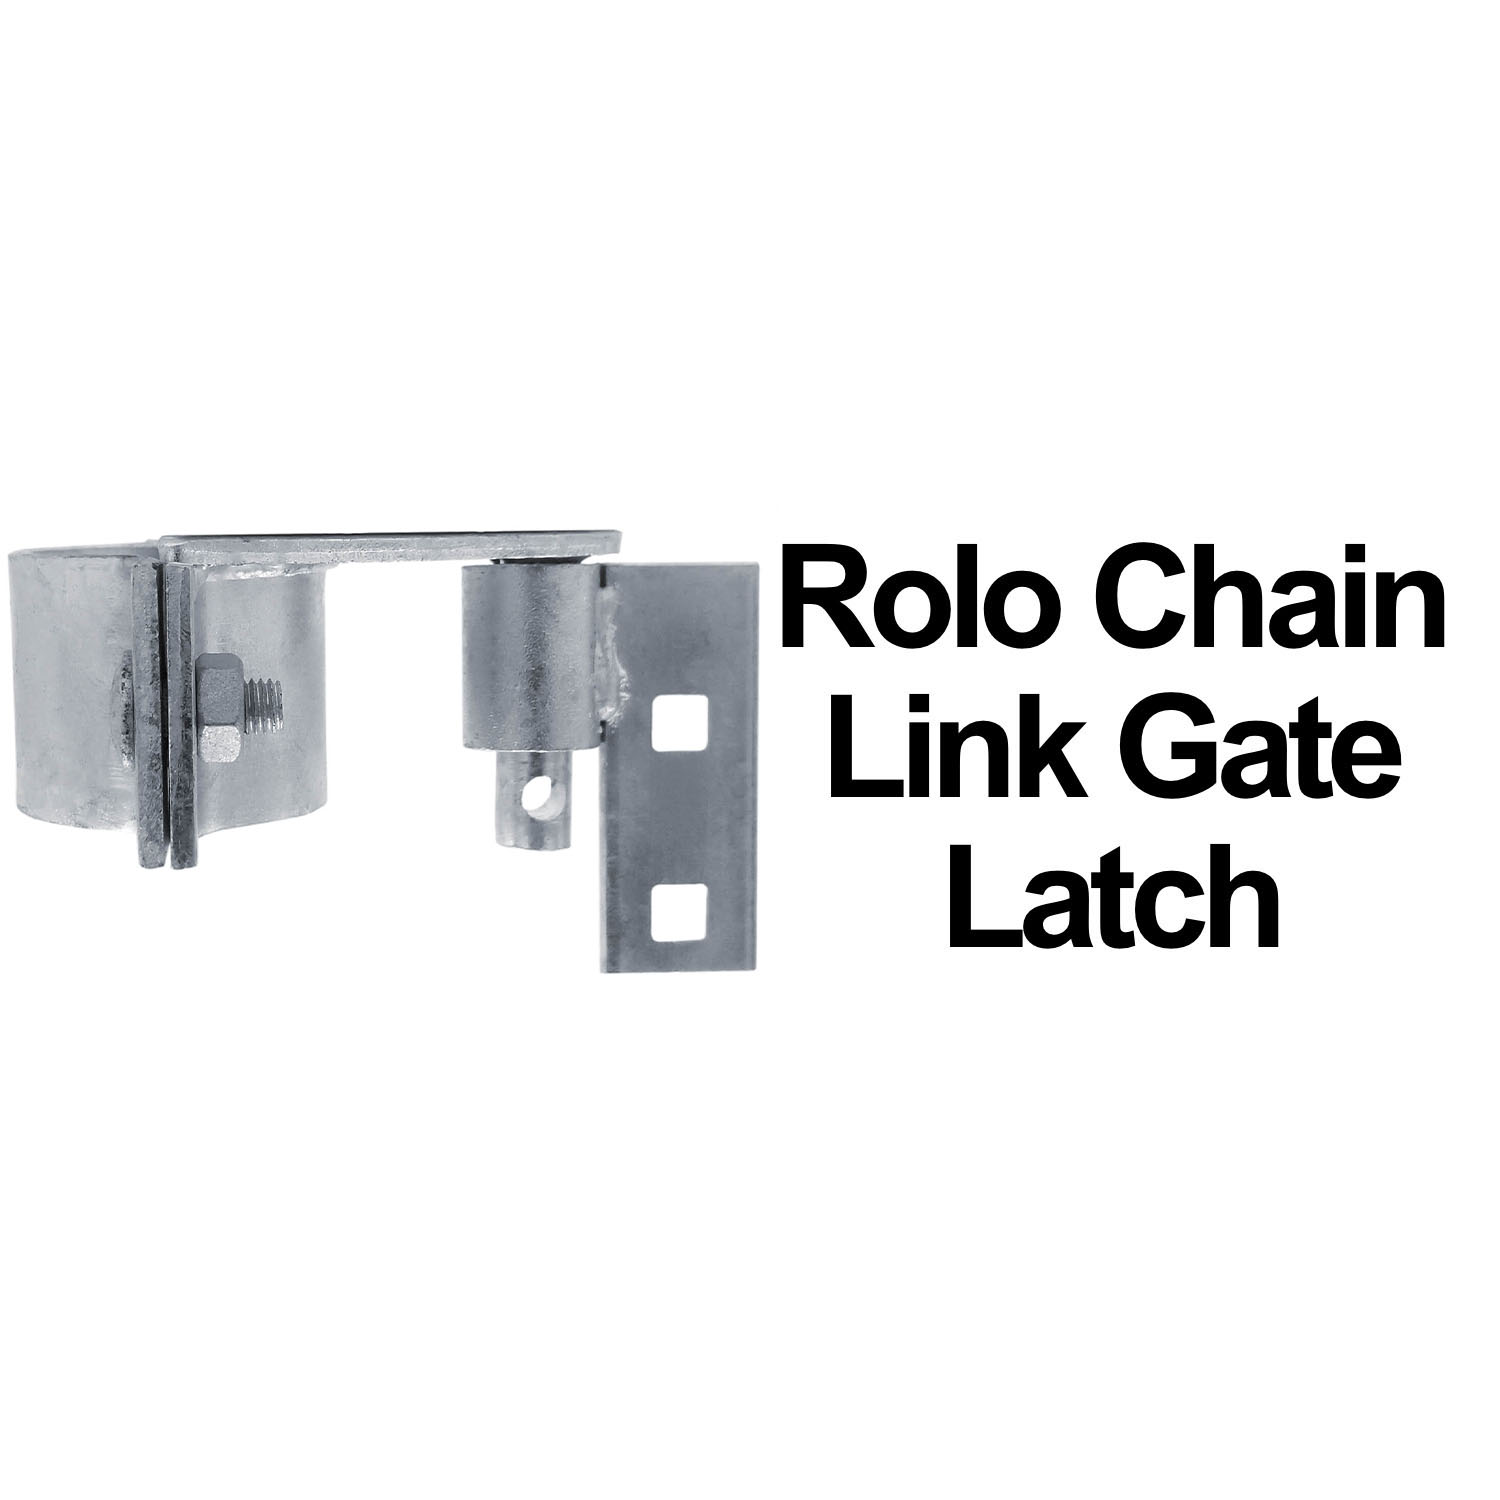 ROLO Chain Link Gate Latch